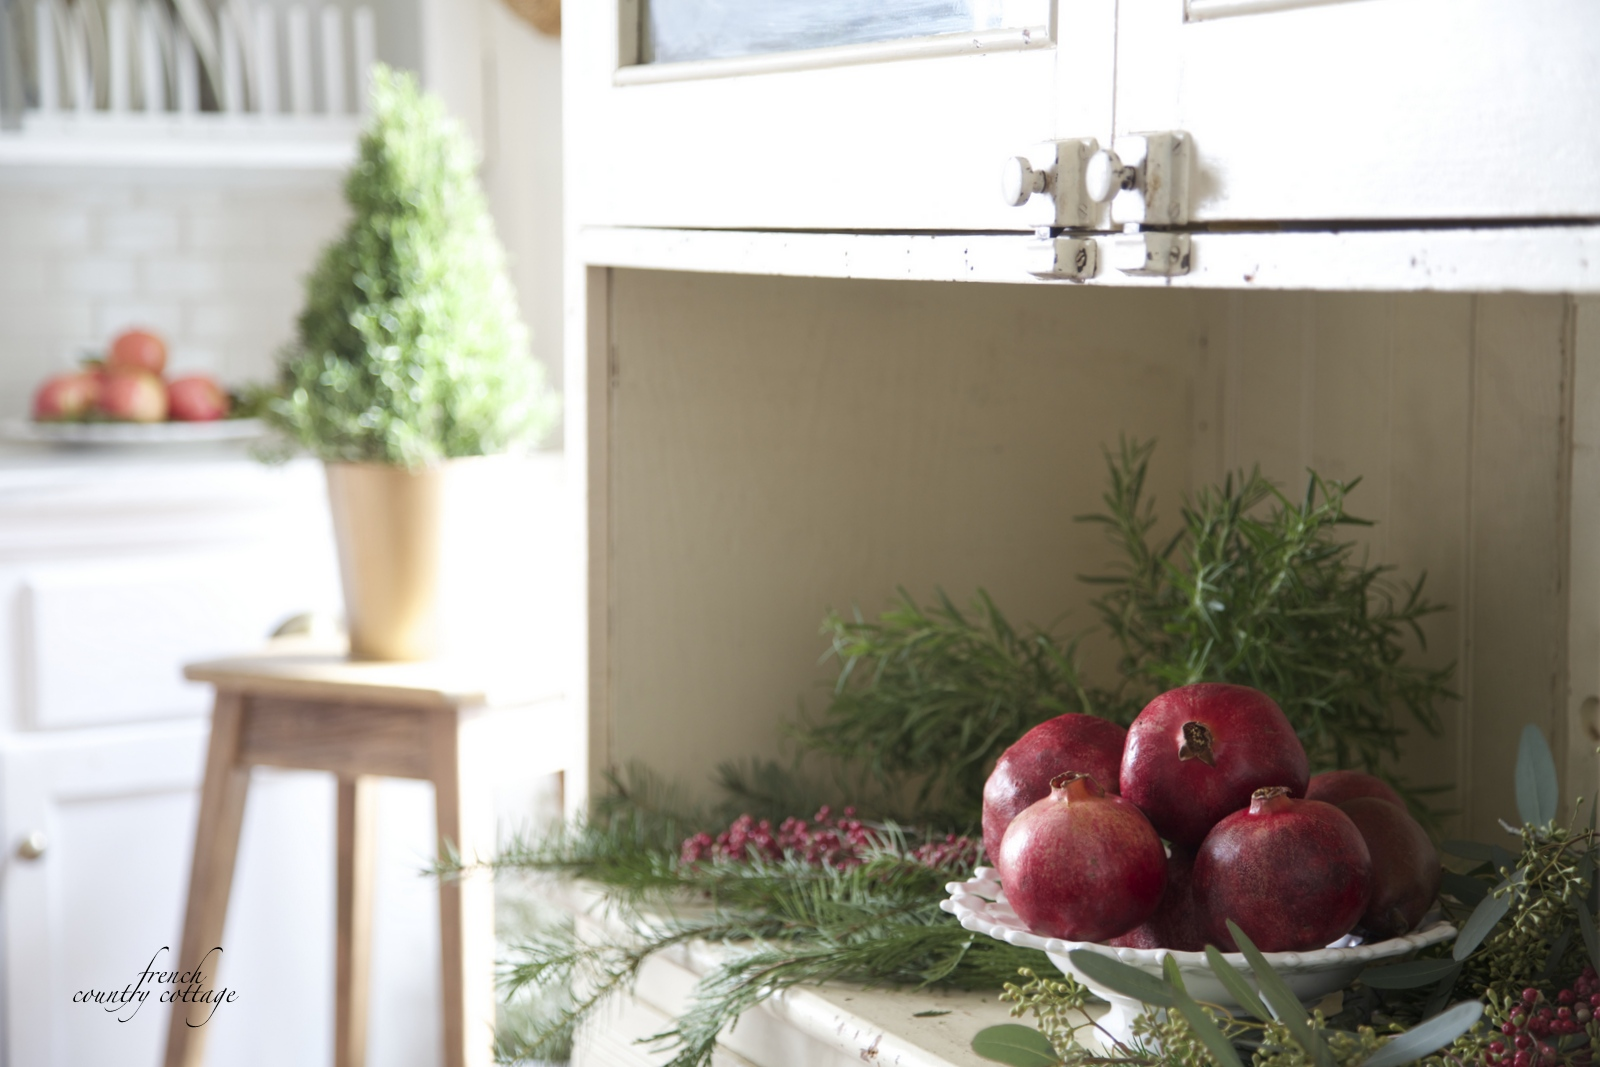 Courtney at french country cottage decorated the kitchen - French Country Cottage Christmas Home Holiday Decorating Kitchen